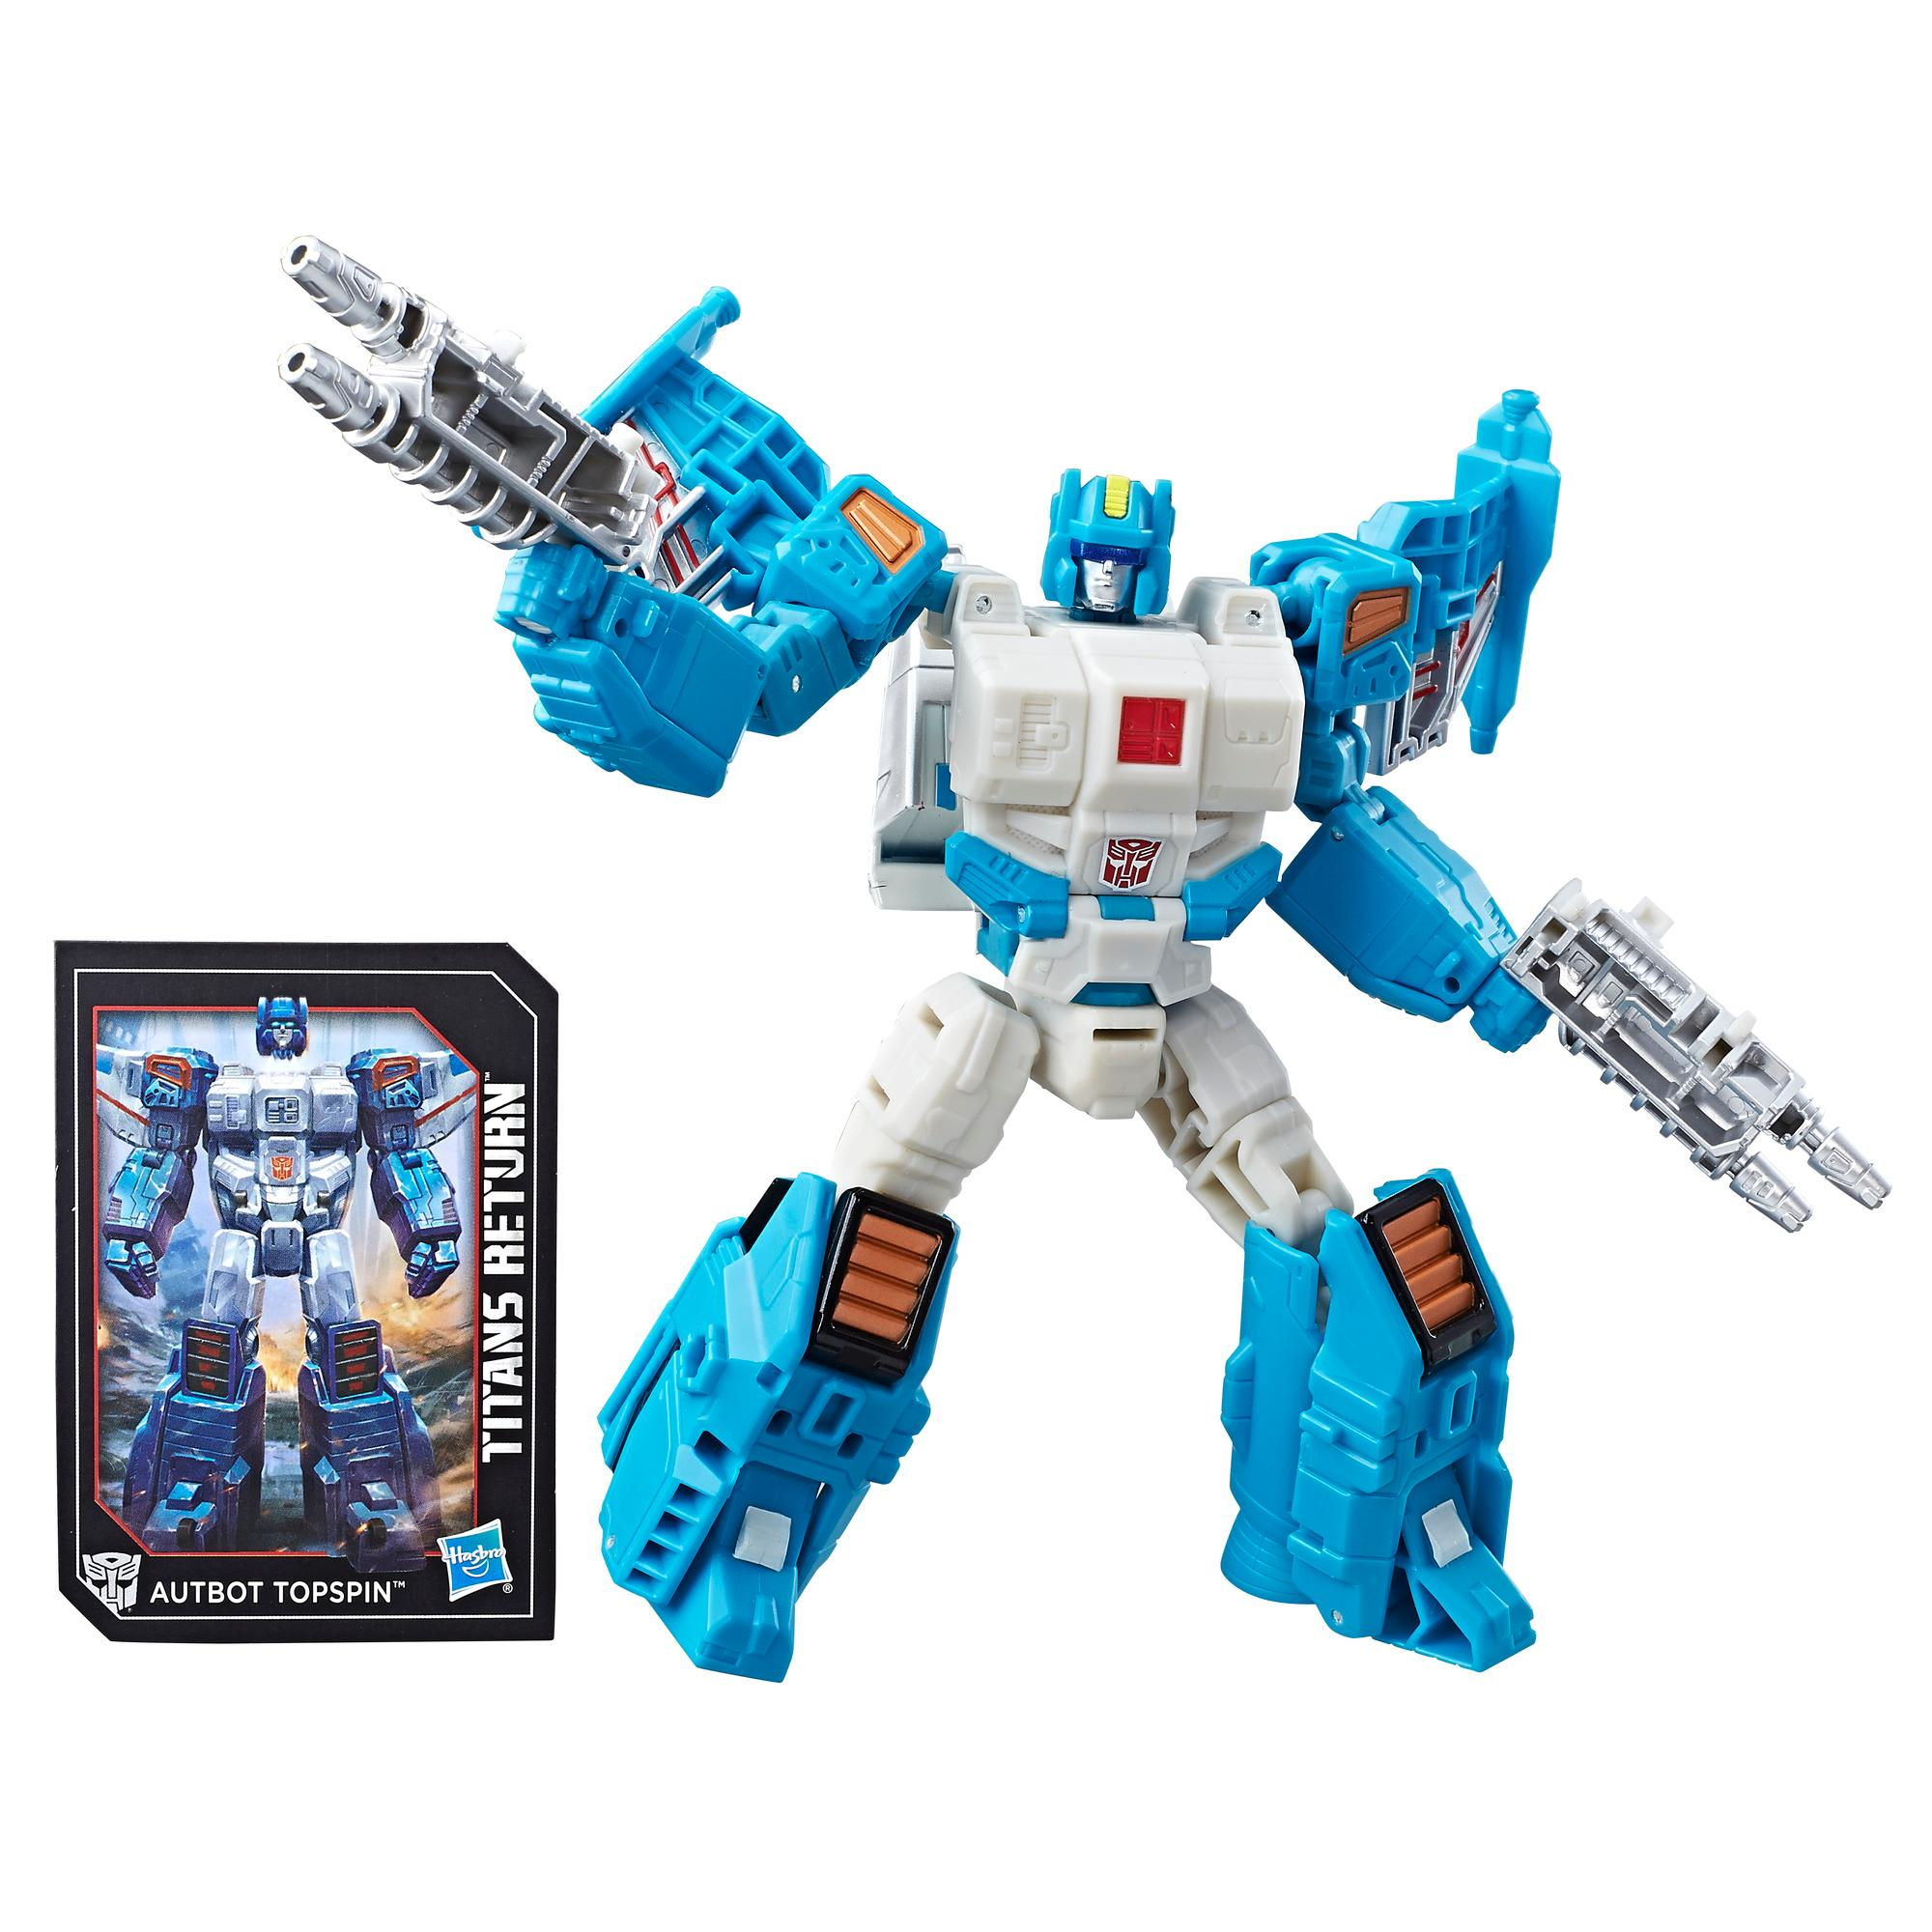 Transformers Generations Titans Return Autobot Topspin e Freezeout